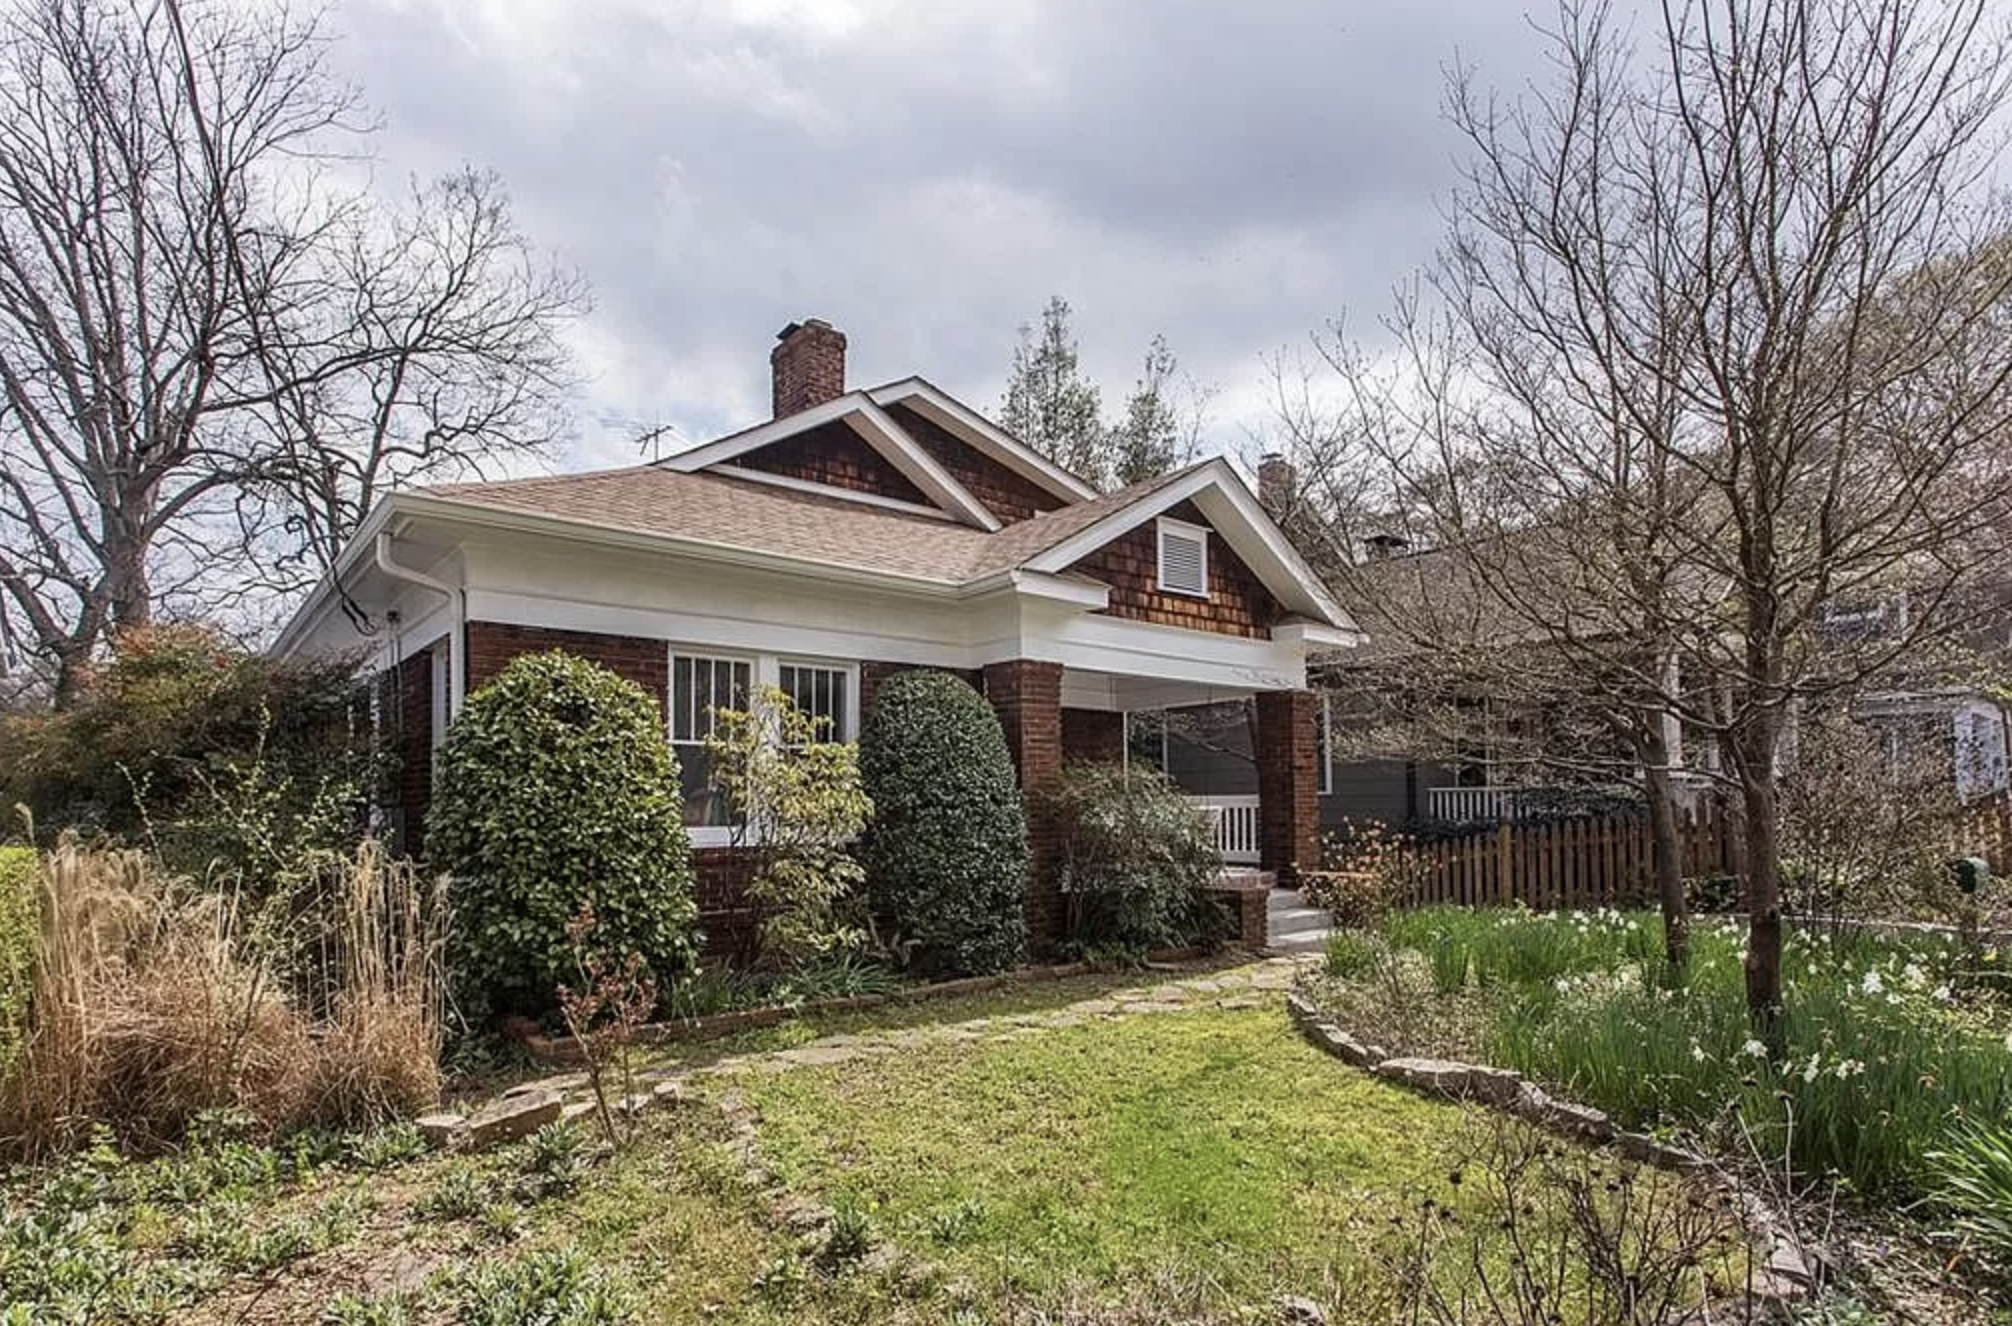 Brick house with white trim sits behind a front yard landscaped with trees, shrubs and flowers.